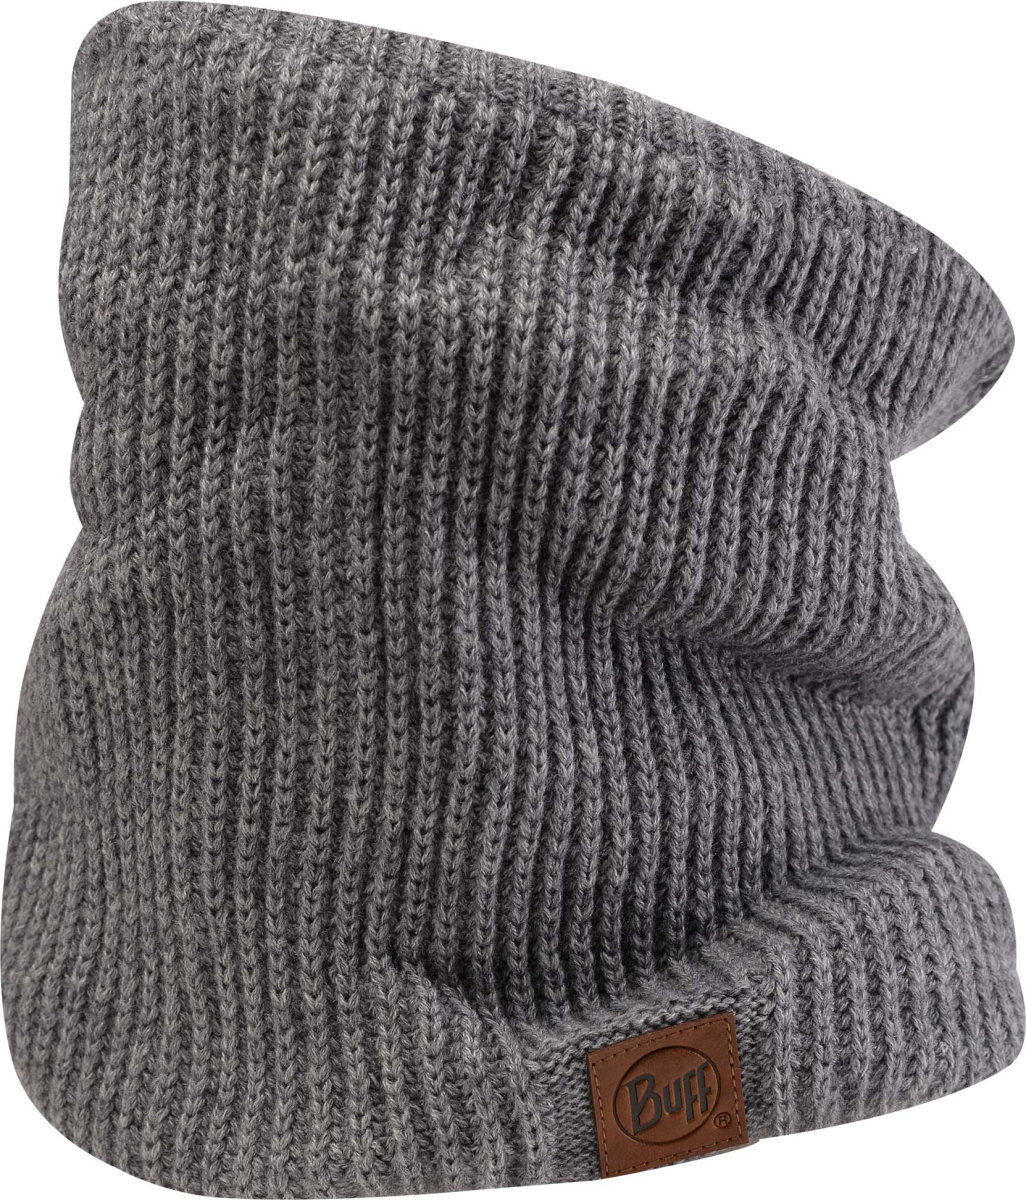 Шарф многофункциональный Buff Knitted & Polar Neckwarmer Rutger melange 3 Knitted & Polar Neckwarmer BU 117902.938.10.00